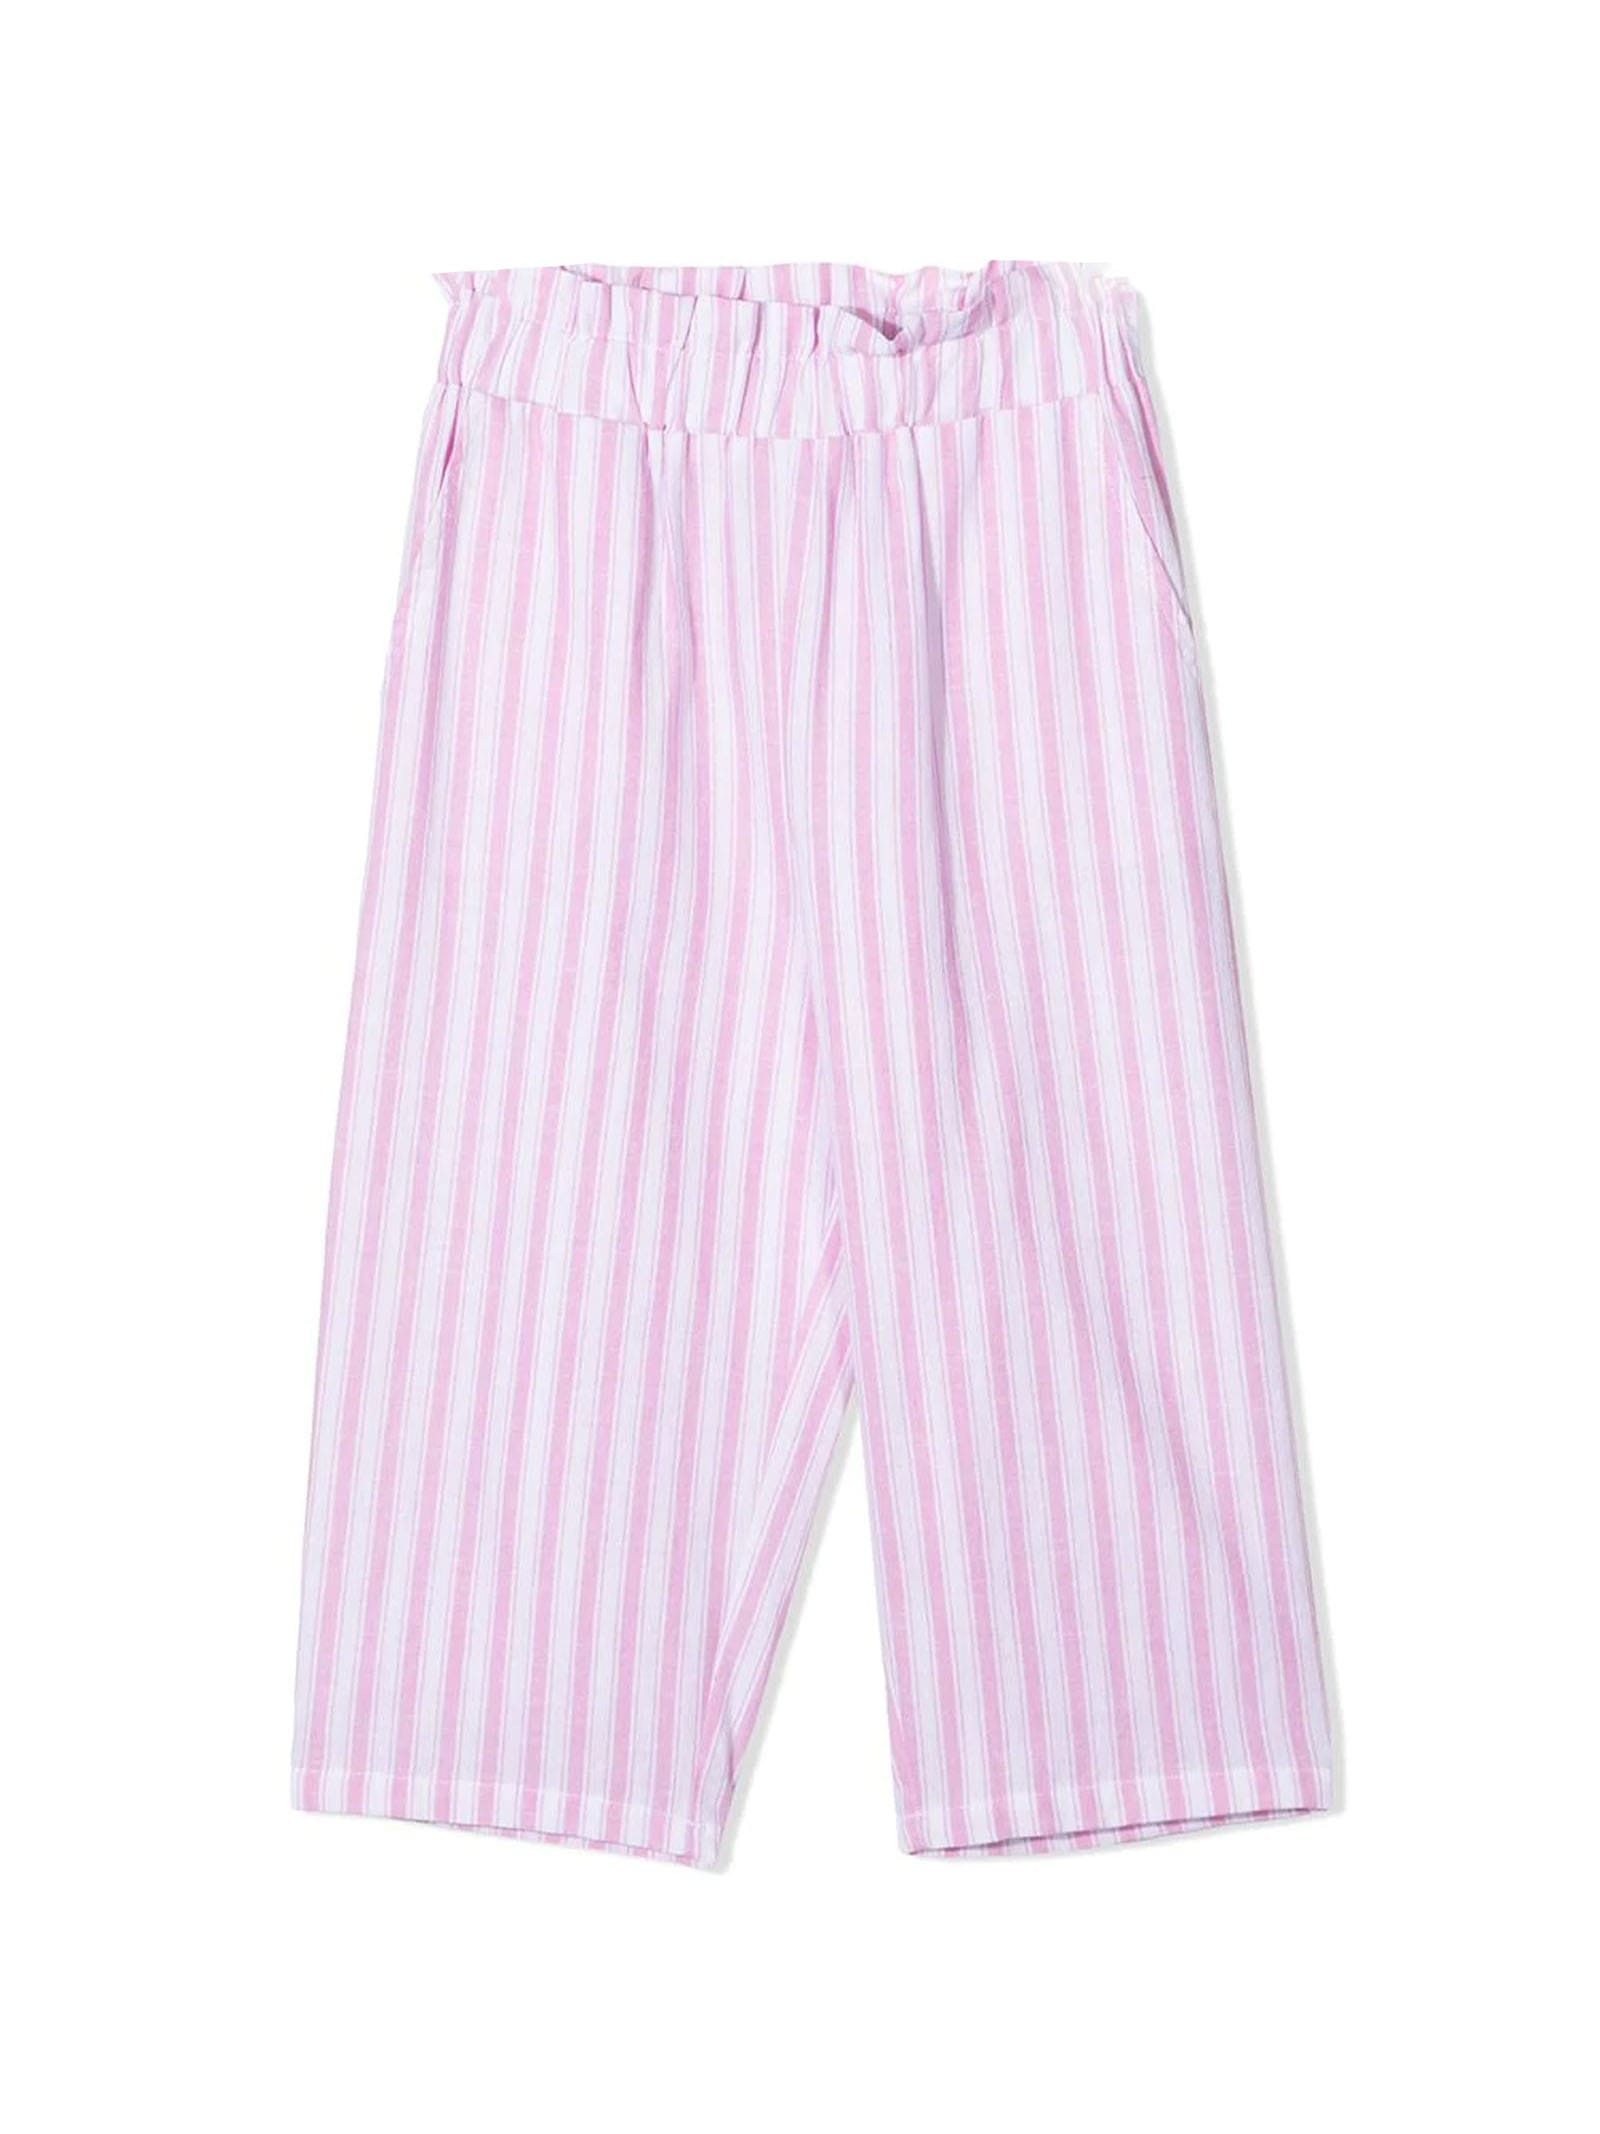 White And Pink Cotton-blend Trousers